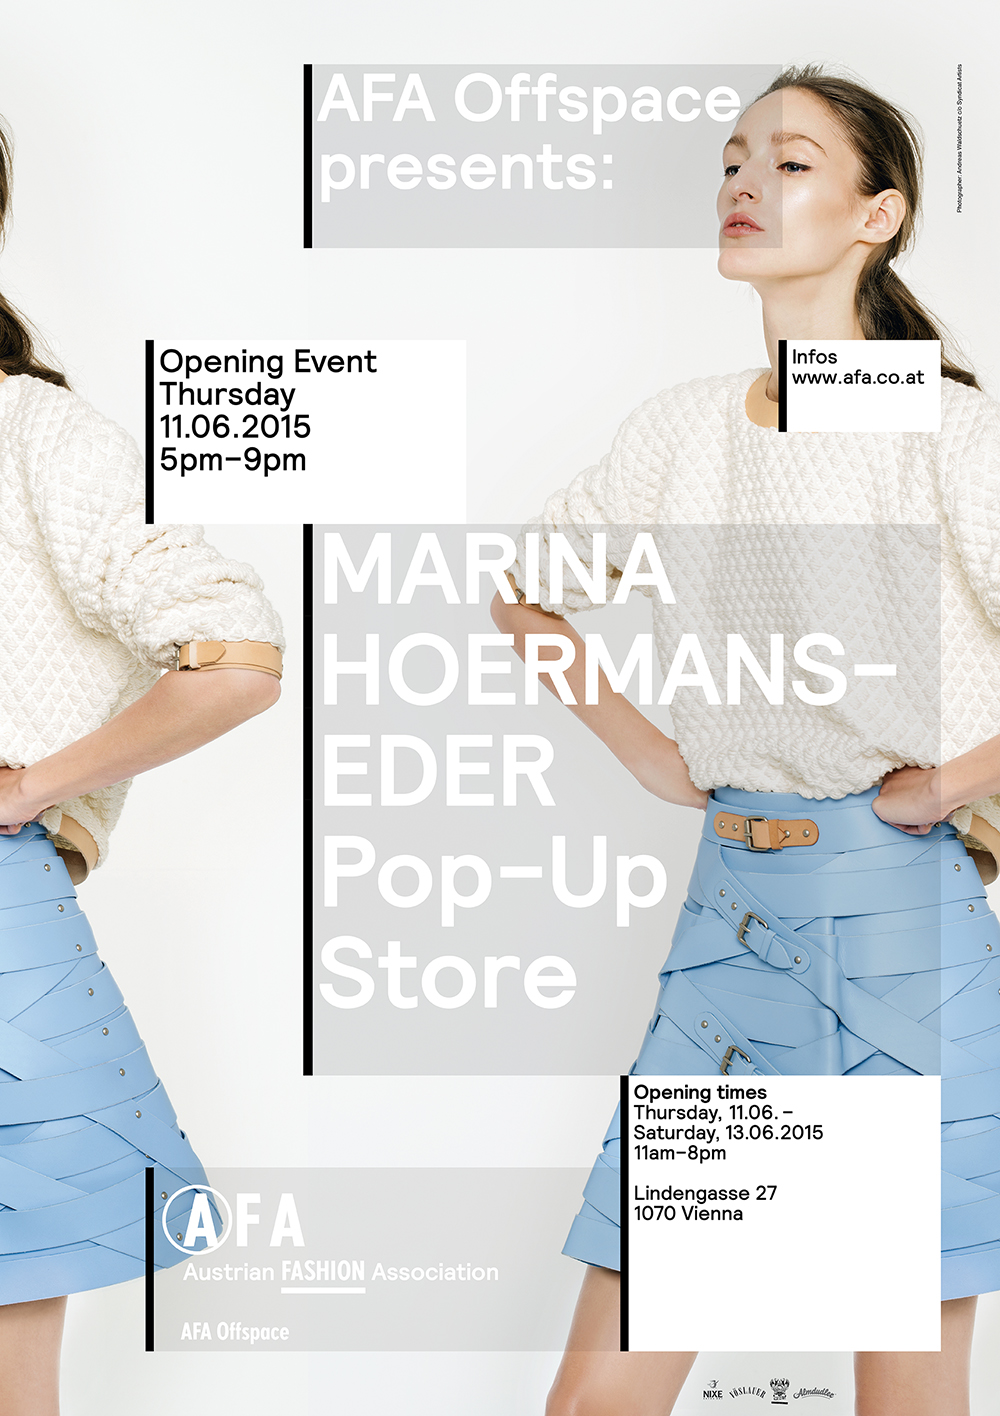 AFA_PosterA1_Pop_Up_Store_RZ_small.jpg